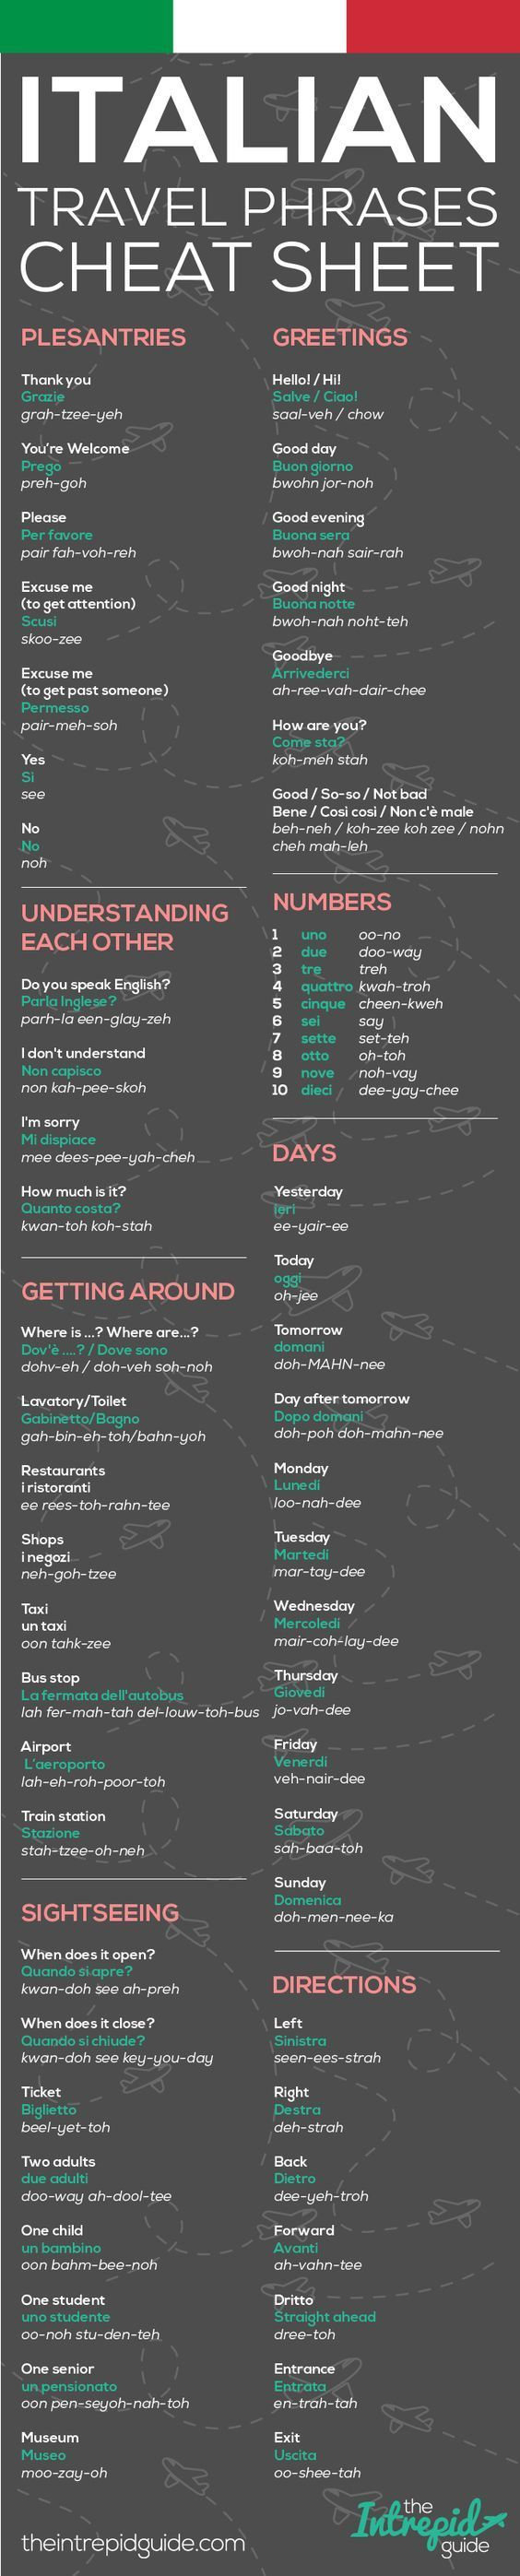 Italian Travel Phrases Cheat Sheet